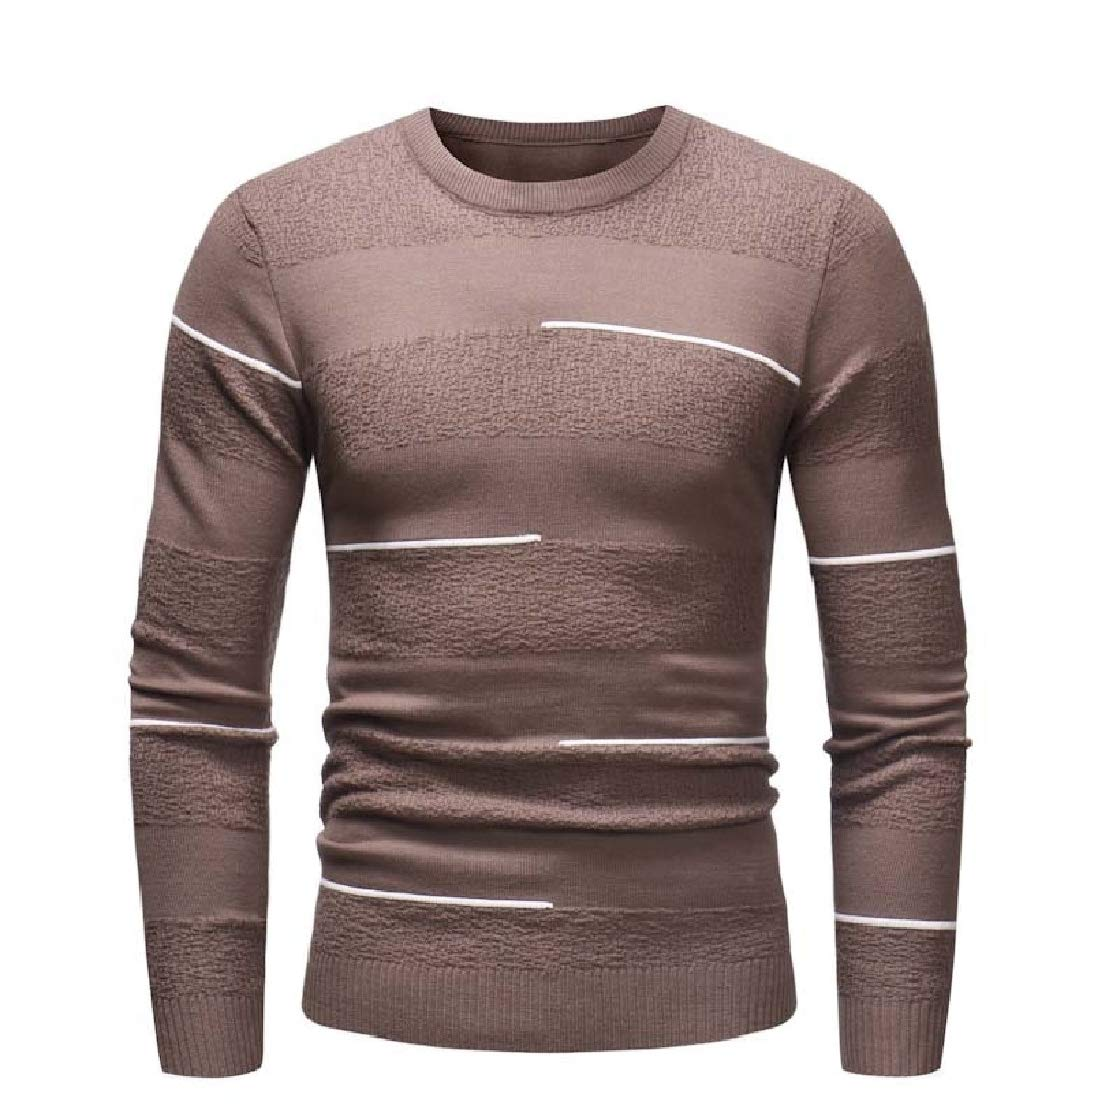 YUNY Men Knit Pullover Long-Sleeve Outwear Crewneck Tops Sweaters Coffee 2XL